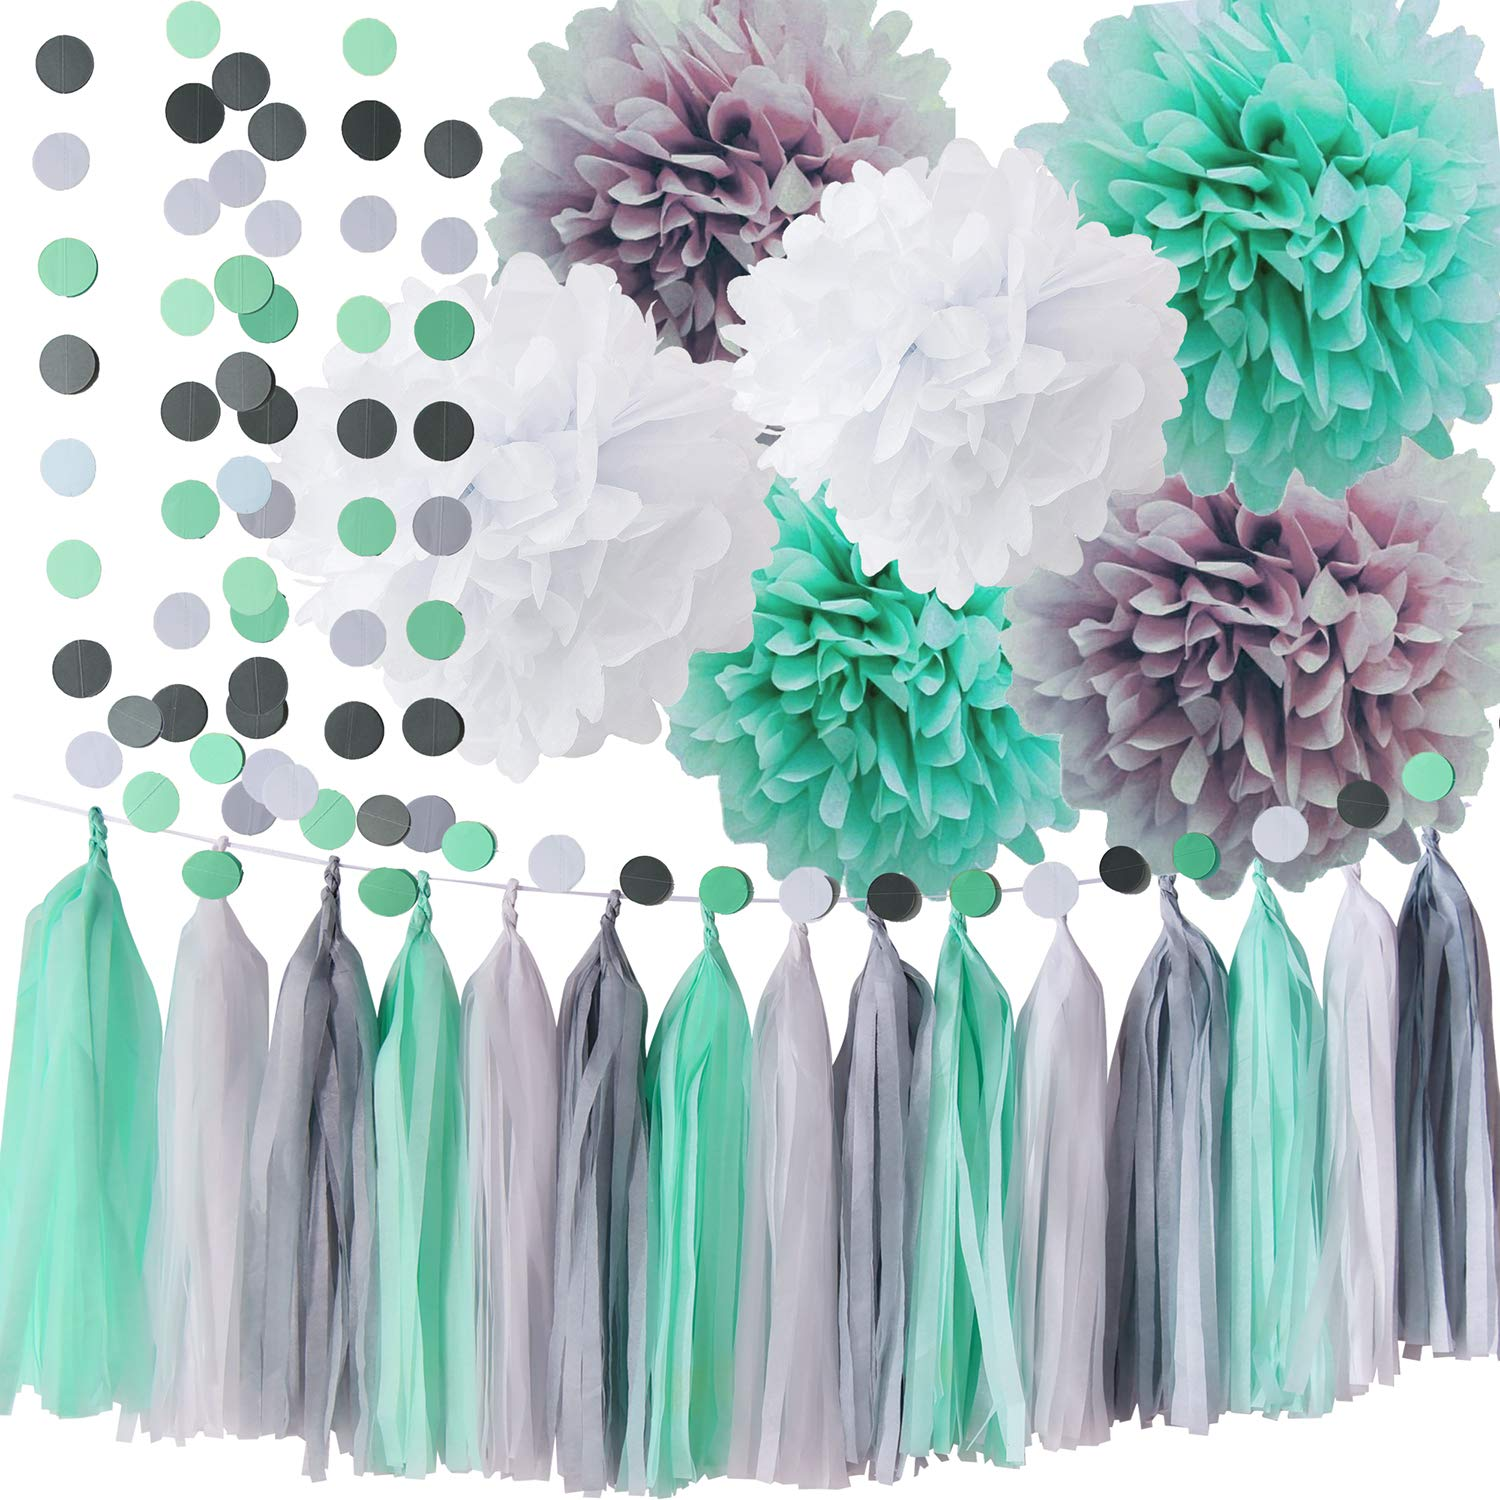 Mint Baby Shower Decorations/Mint Grey White Elephant Baby Shower Supplies  Tissue Paper Pom Pom Circle Garland Tassel Garland Mint Bridal Shower ...